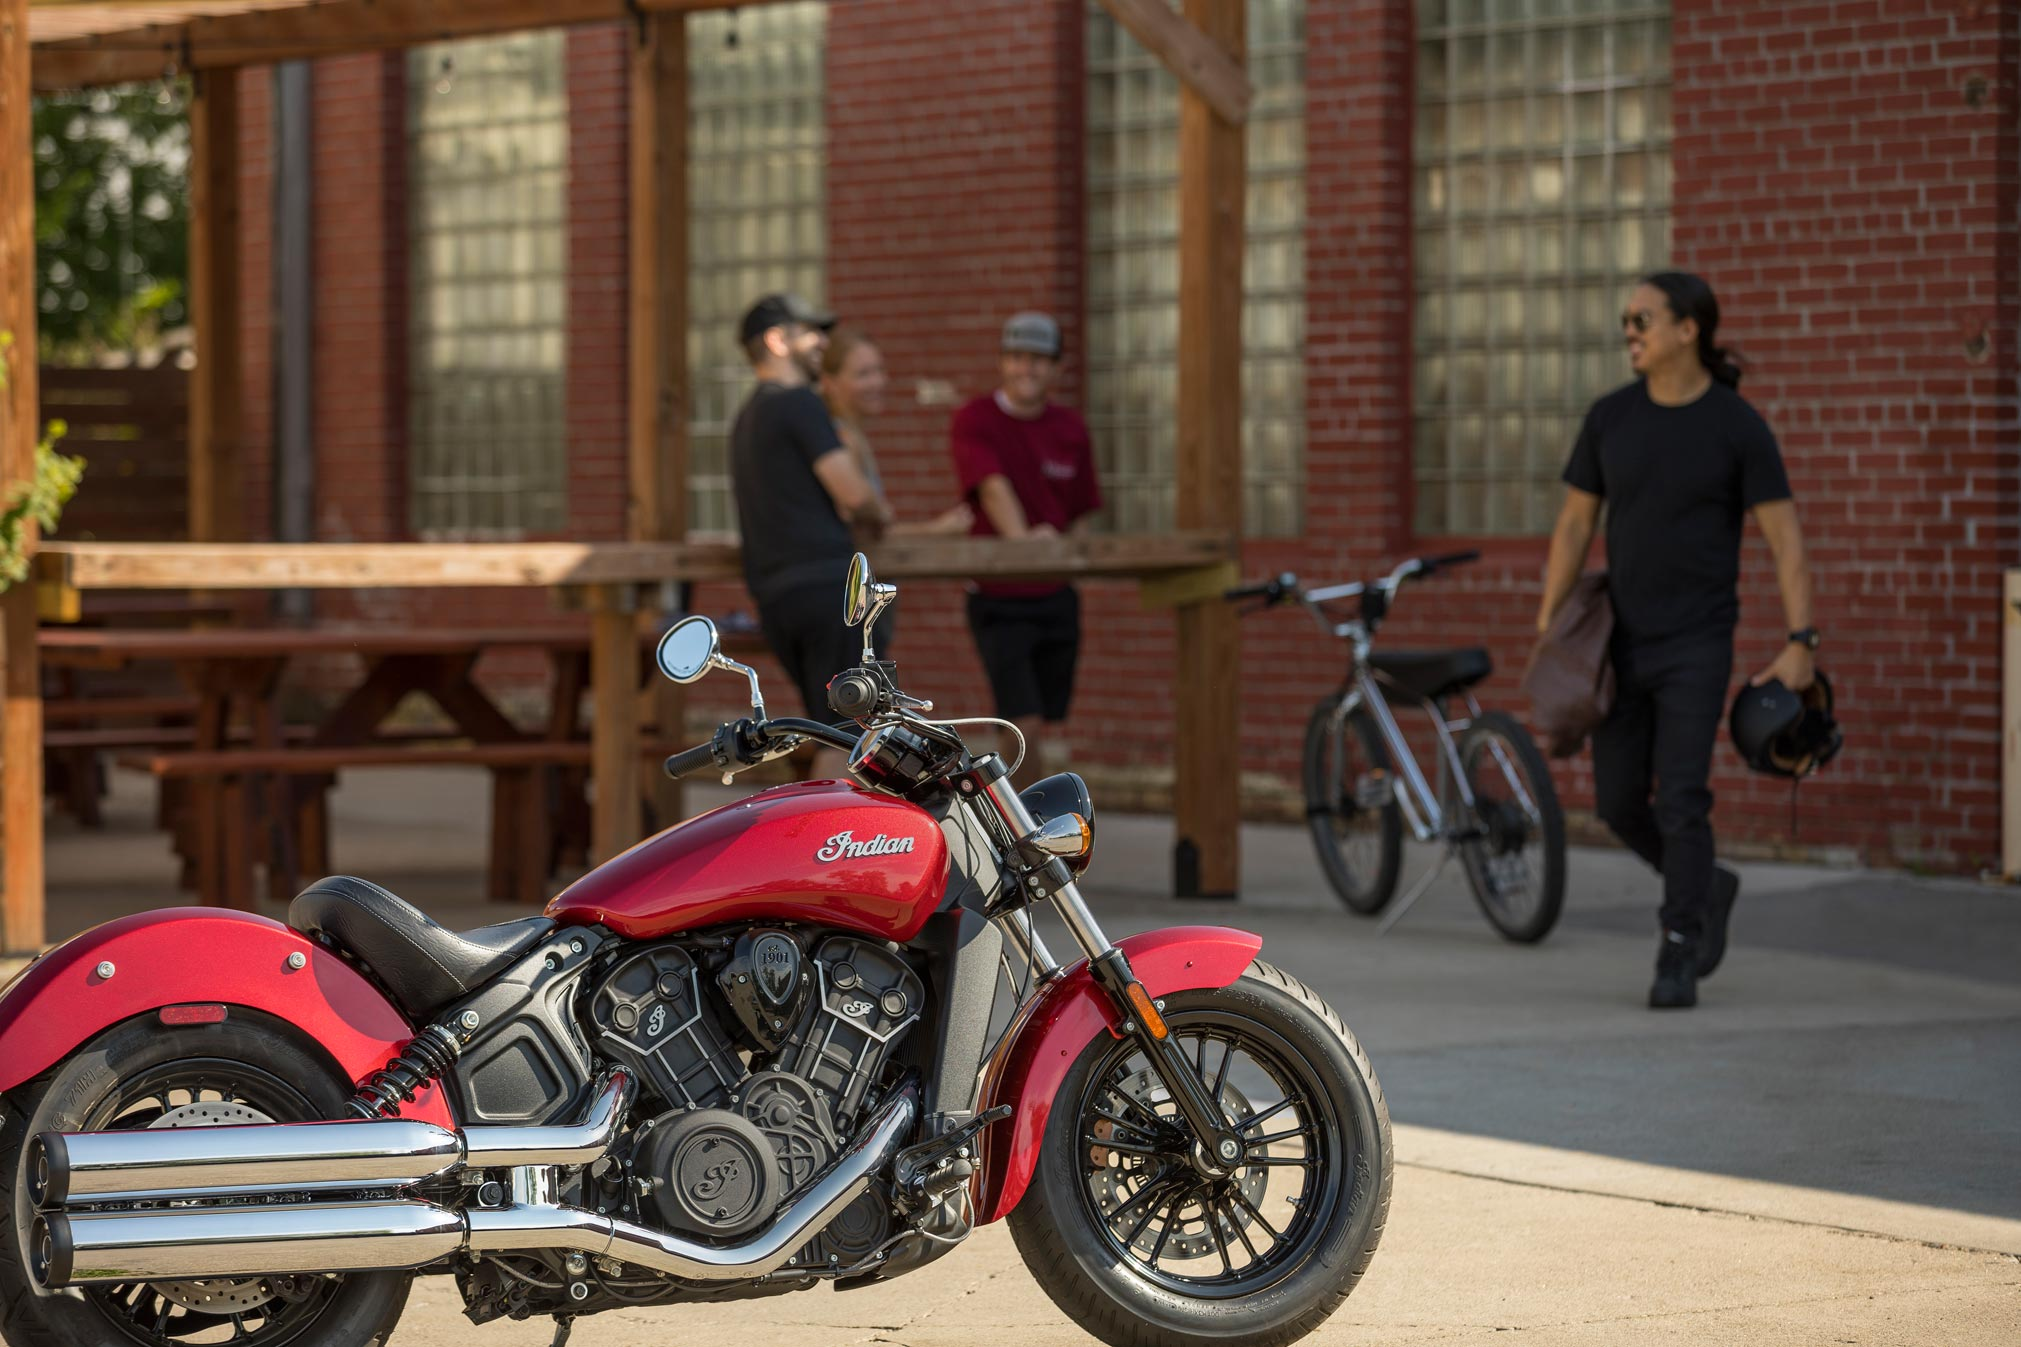 2021 Indian Scout Sixty Guide Total Motorcycle